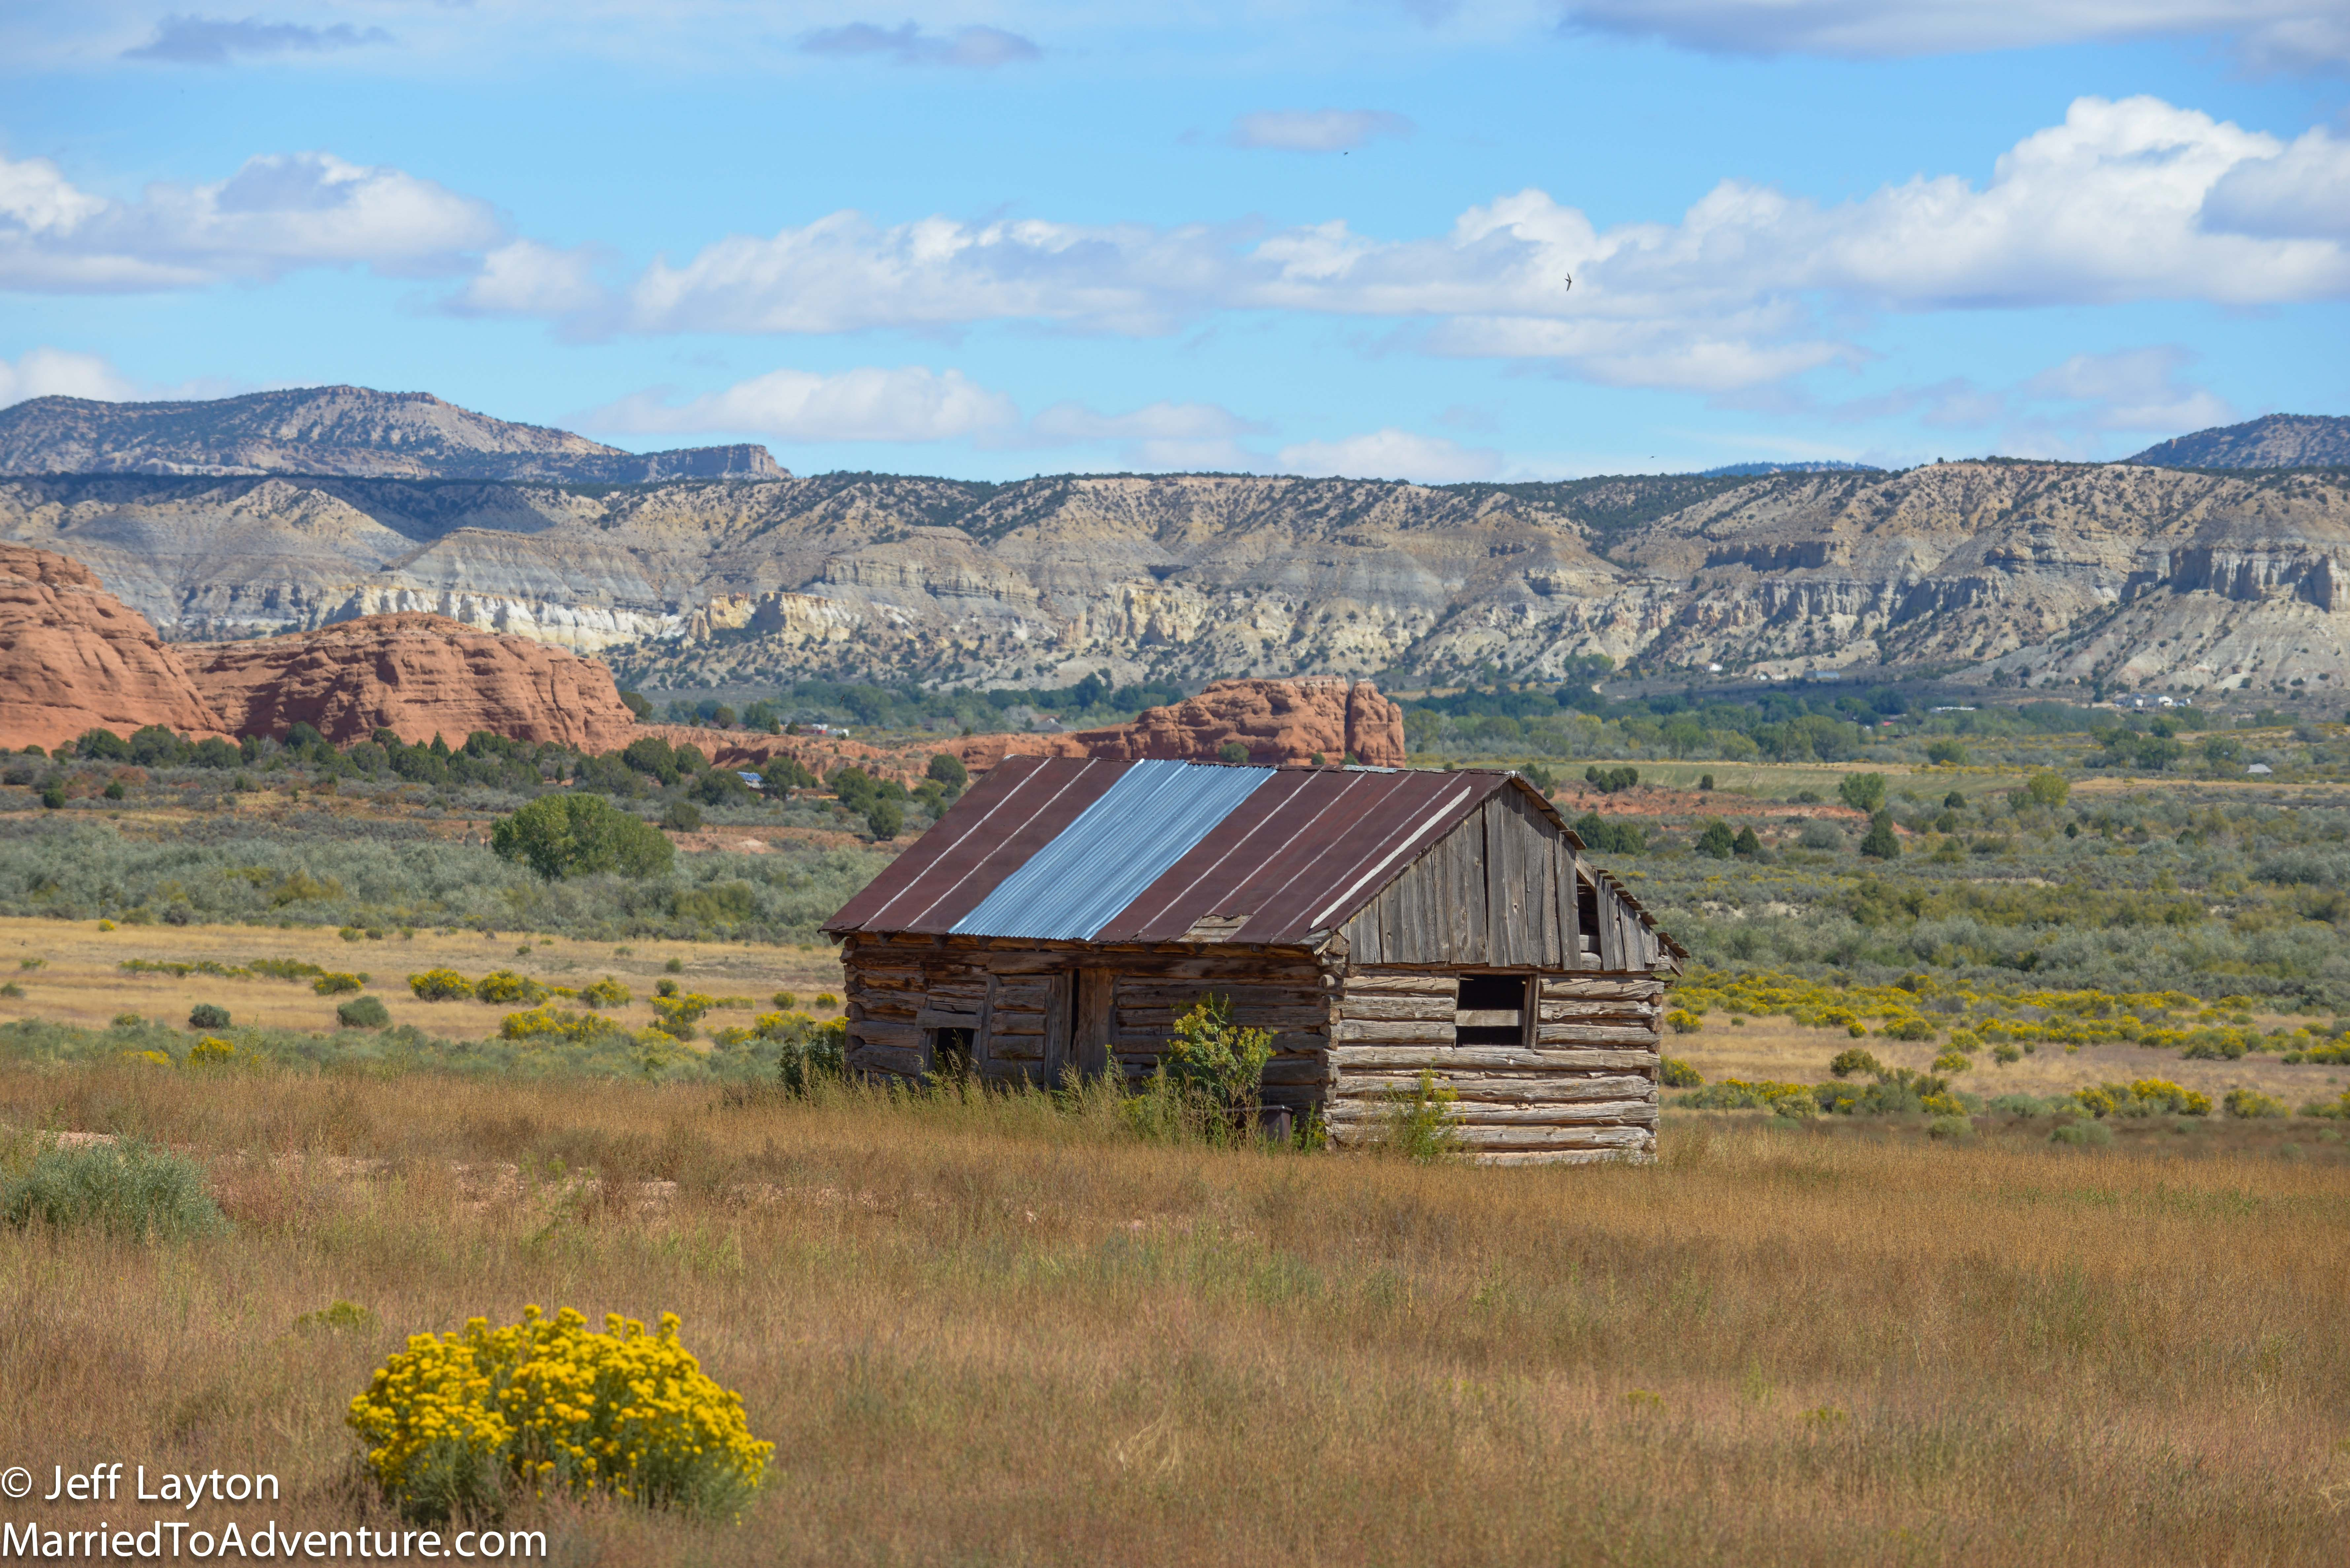 We saw this old structure about halfway between Bryce and Kodachrome